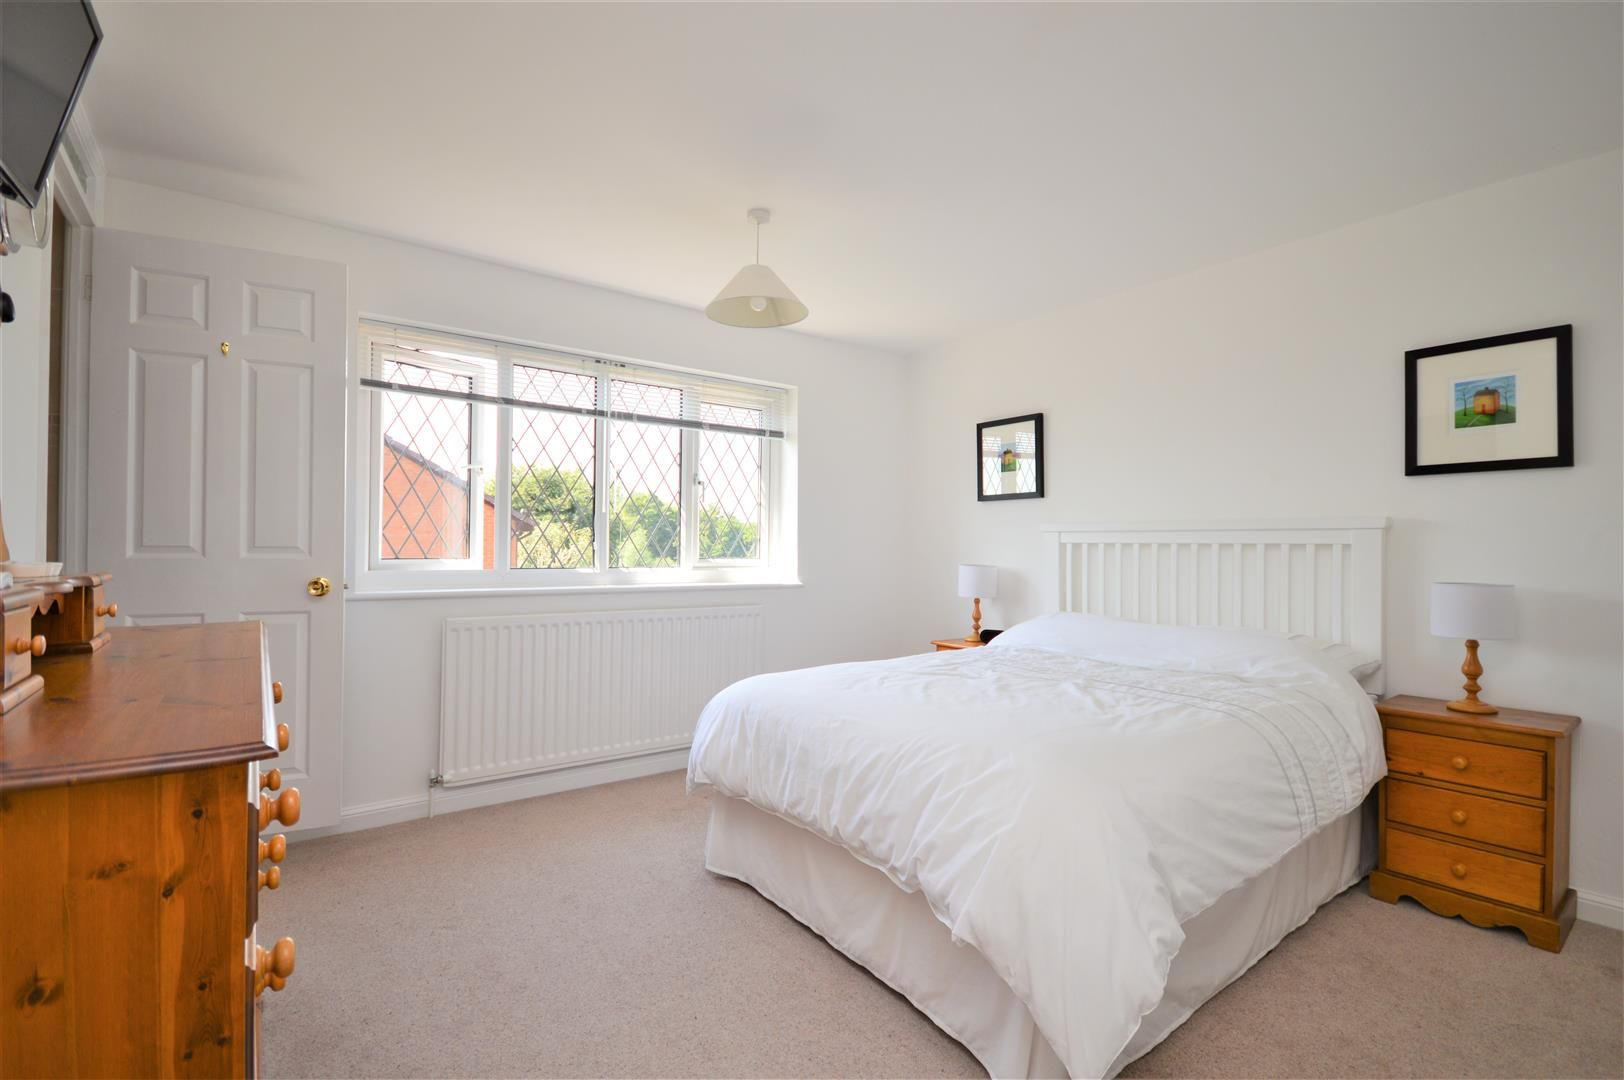 4 bed detached for sale in Hereford  - Property Image 8